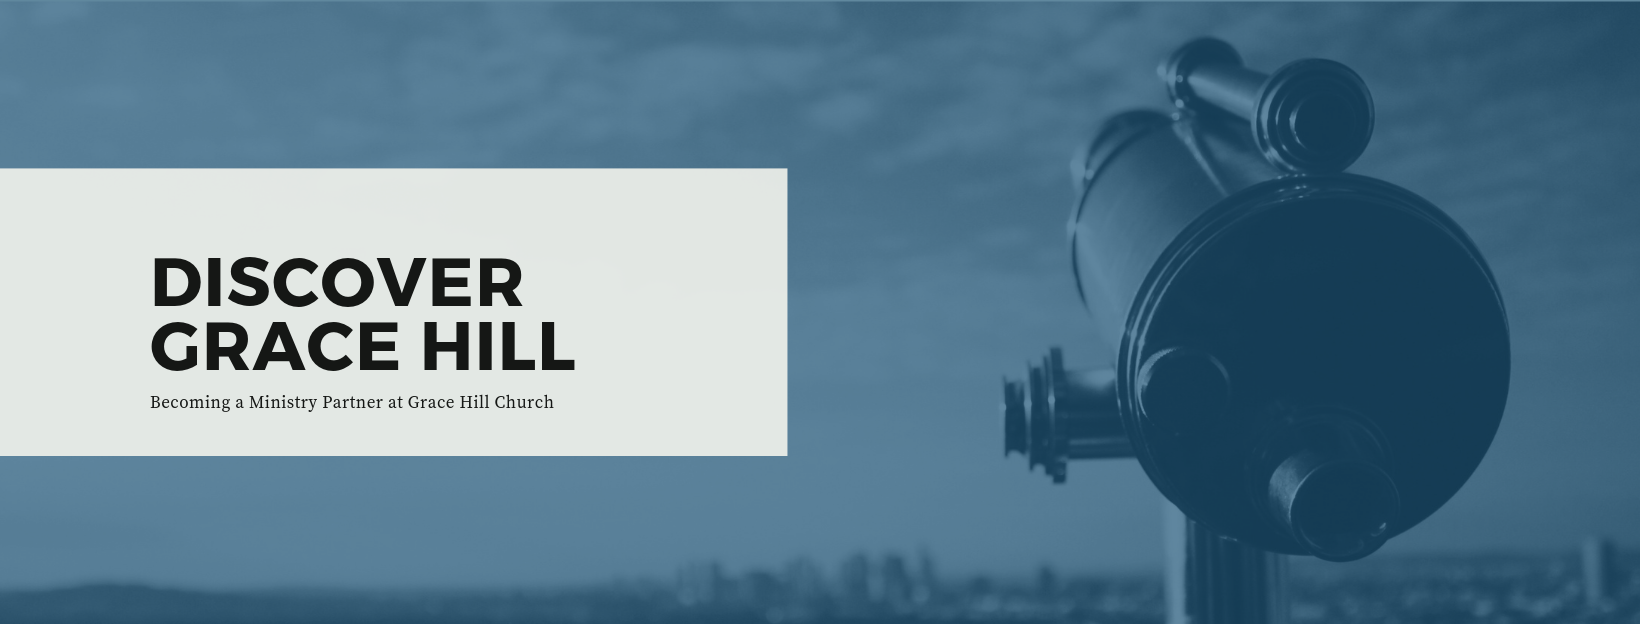 discover grace hill web header.png